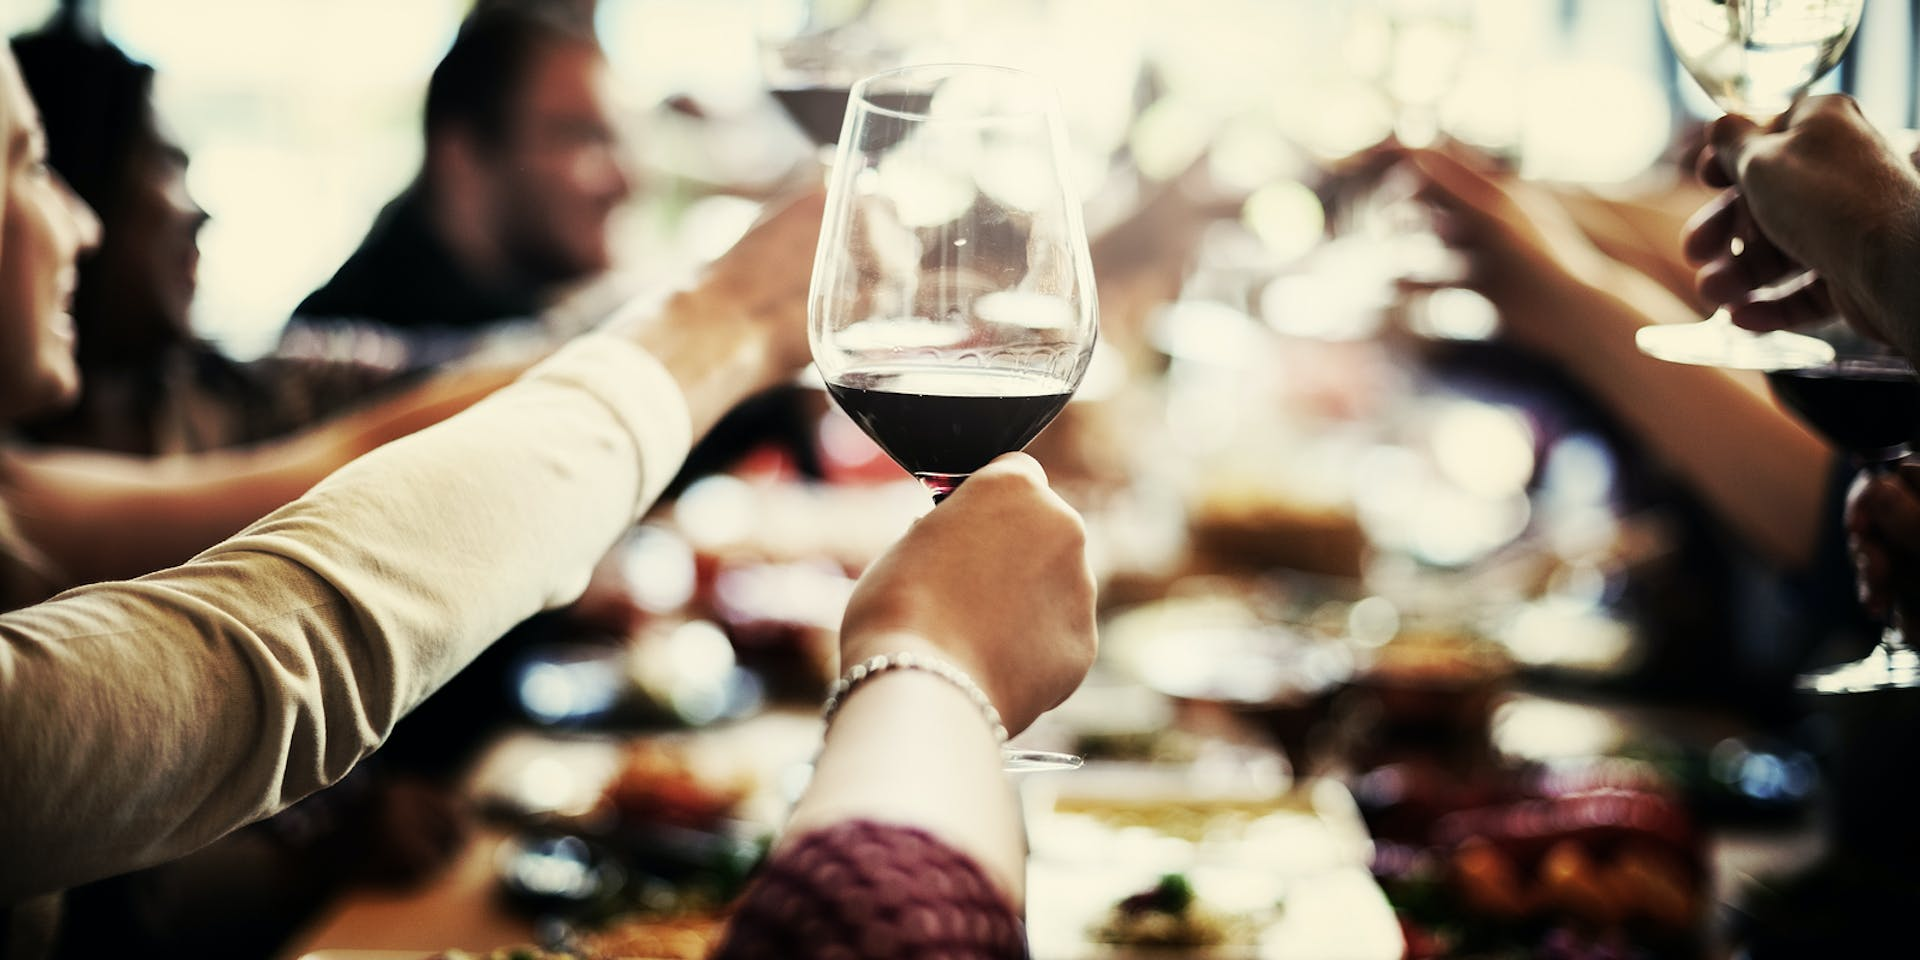 Wine glass raised in a toast.